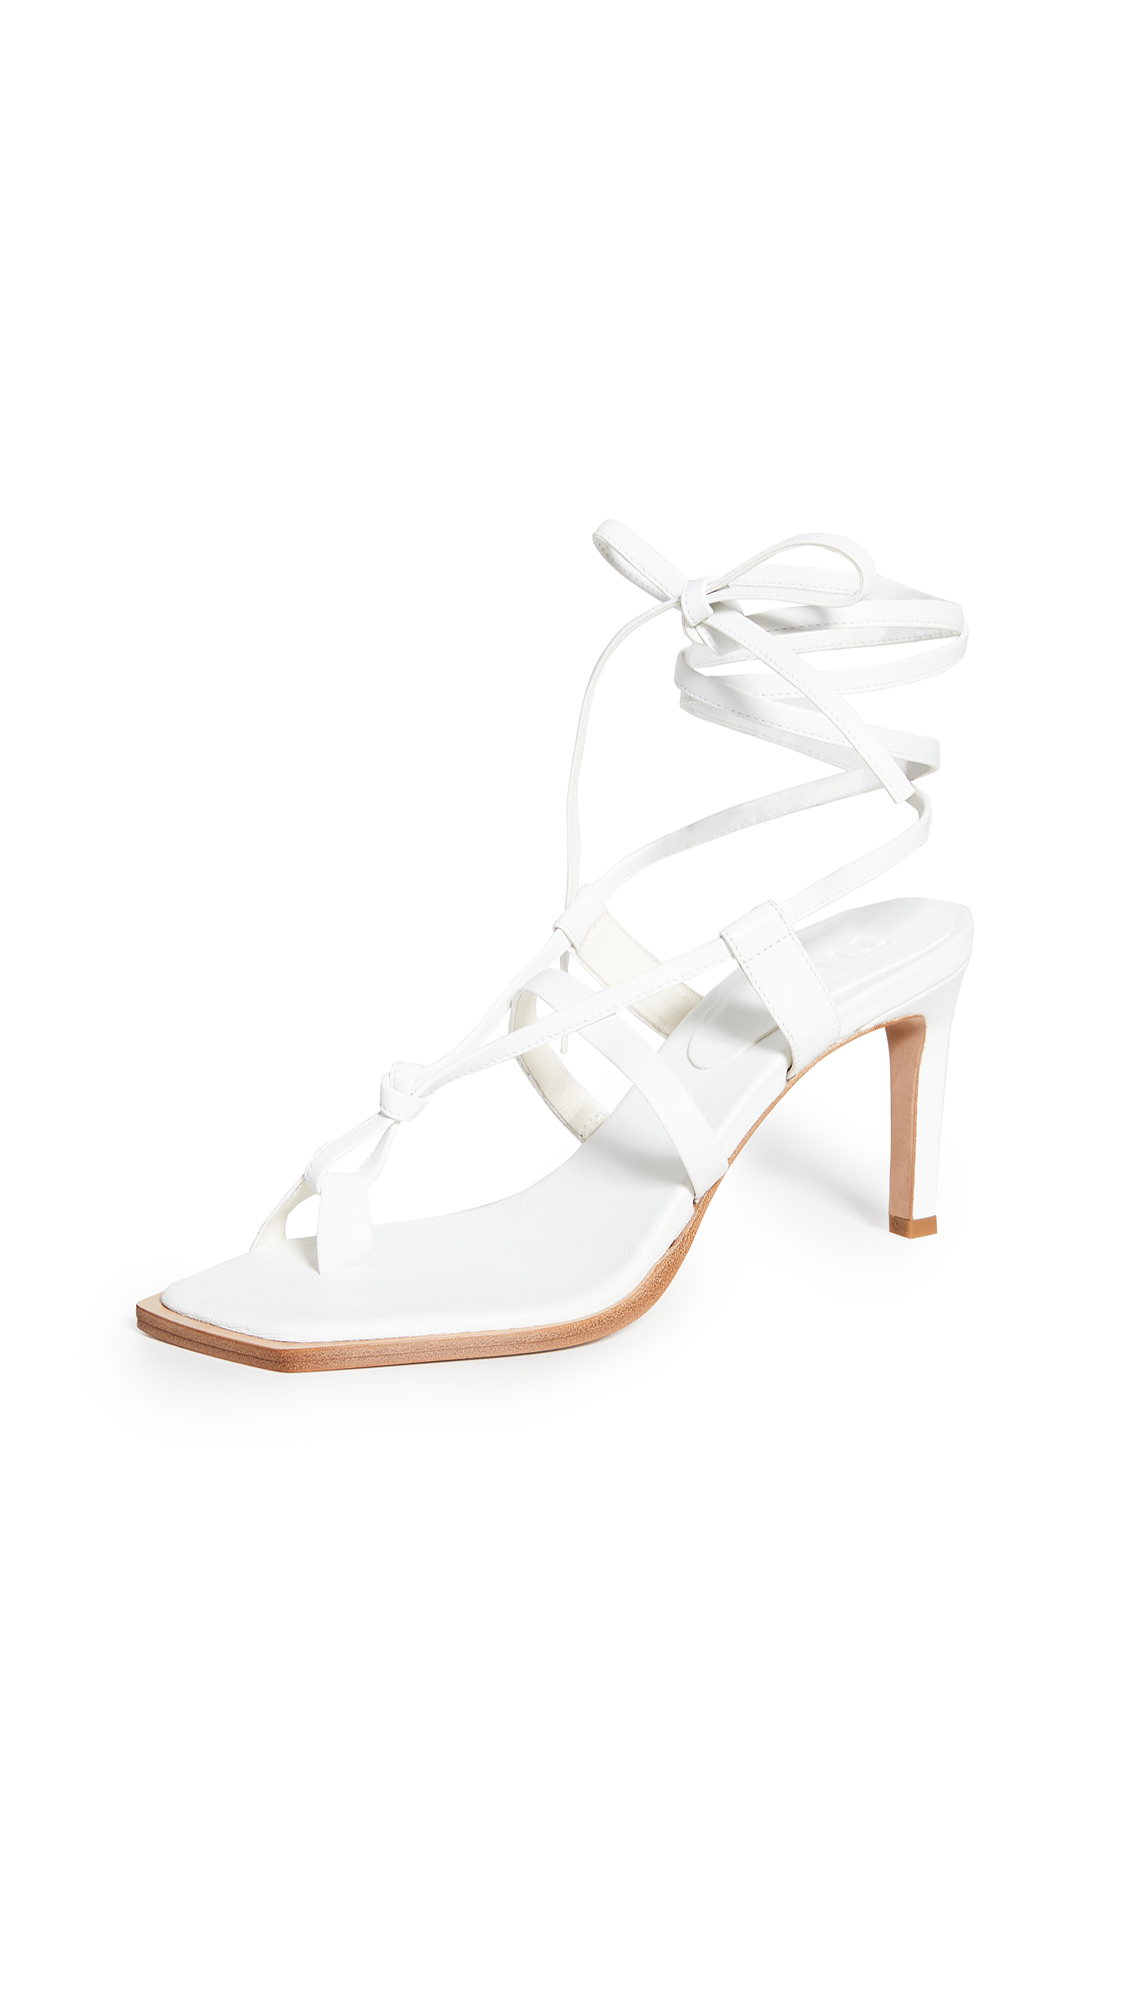 Tibi Ryo Sandals - 50% Off Sale